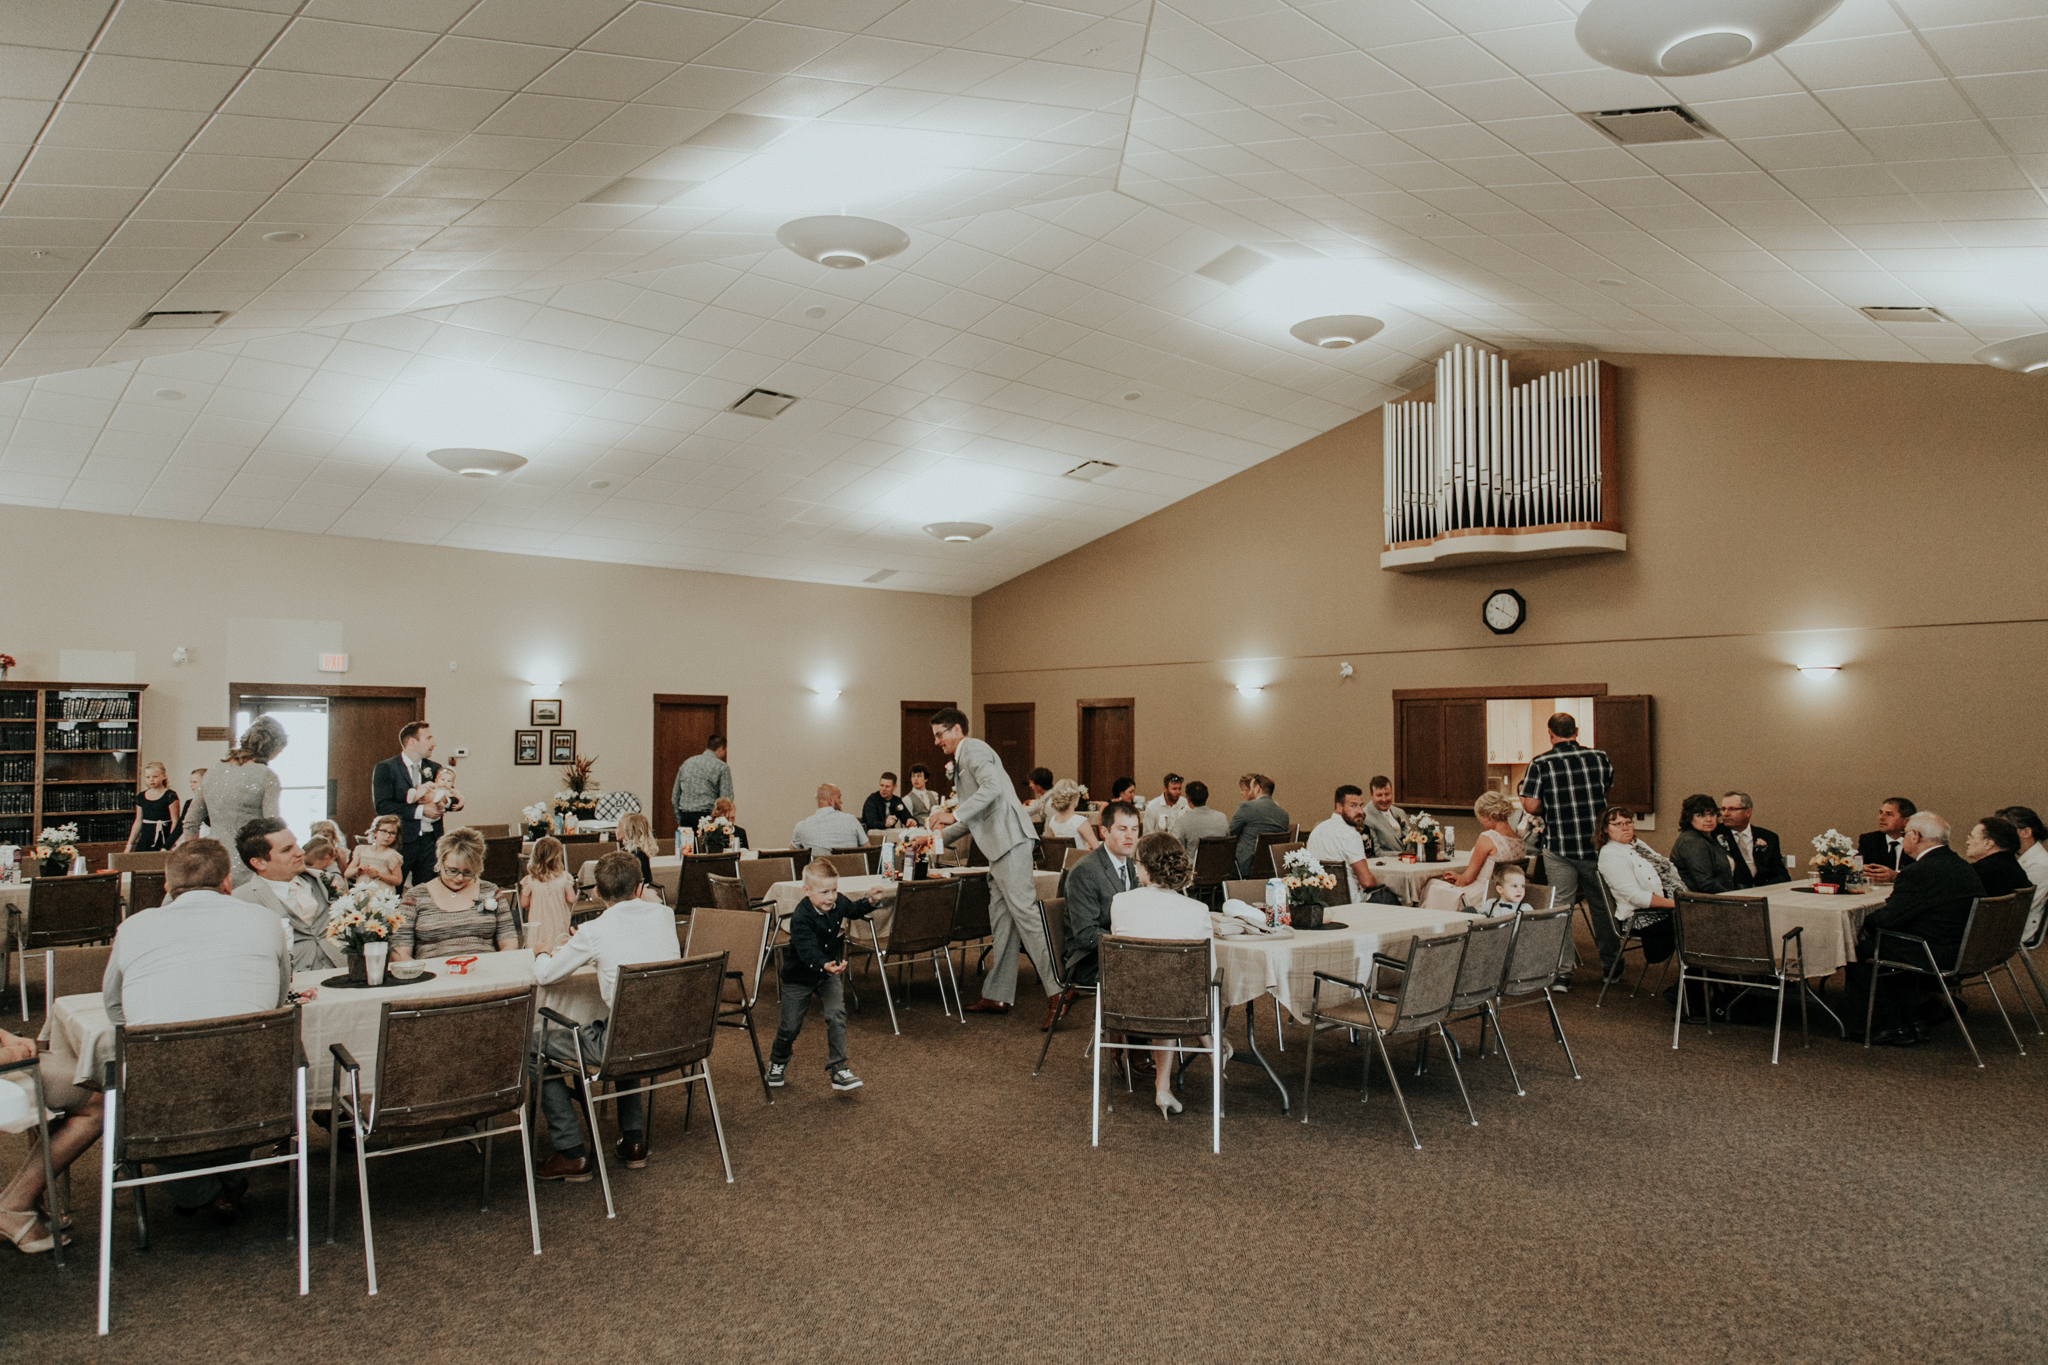 lethbridge-wedding-photographer-love-and-be-loved-photography-steven-marlene-reformed-church-photo-picture-image-27.jpg